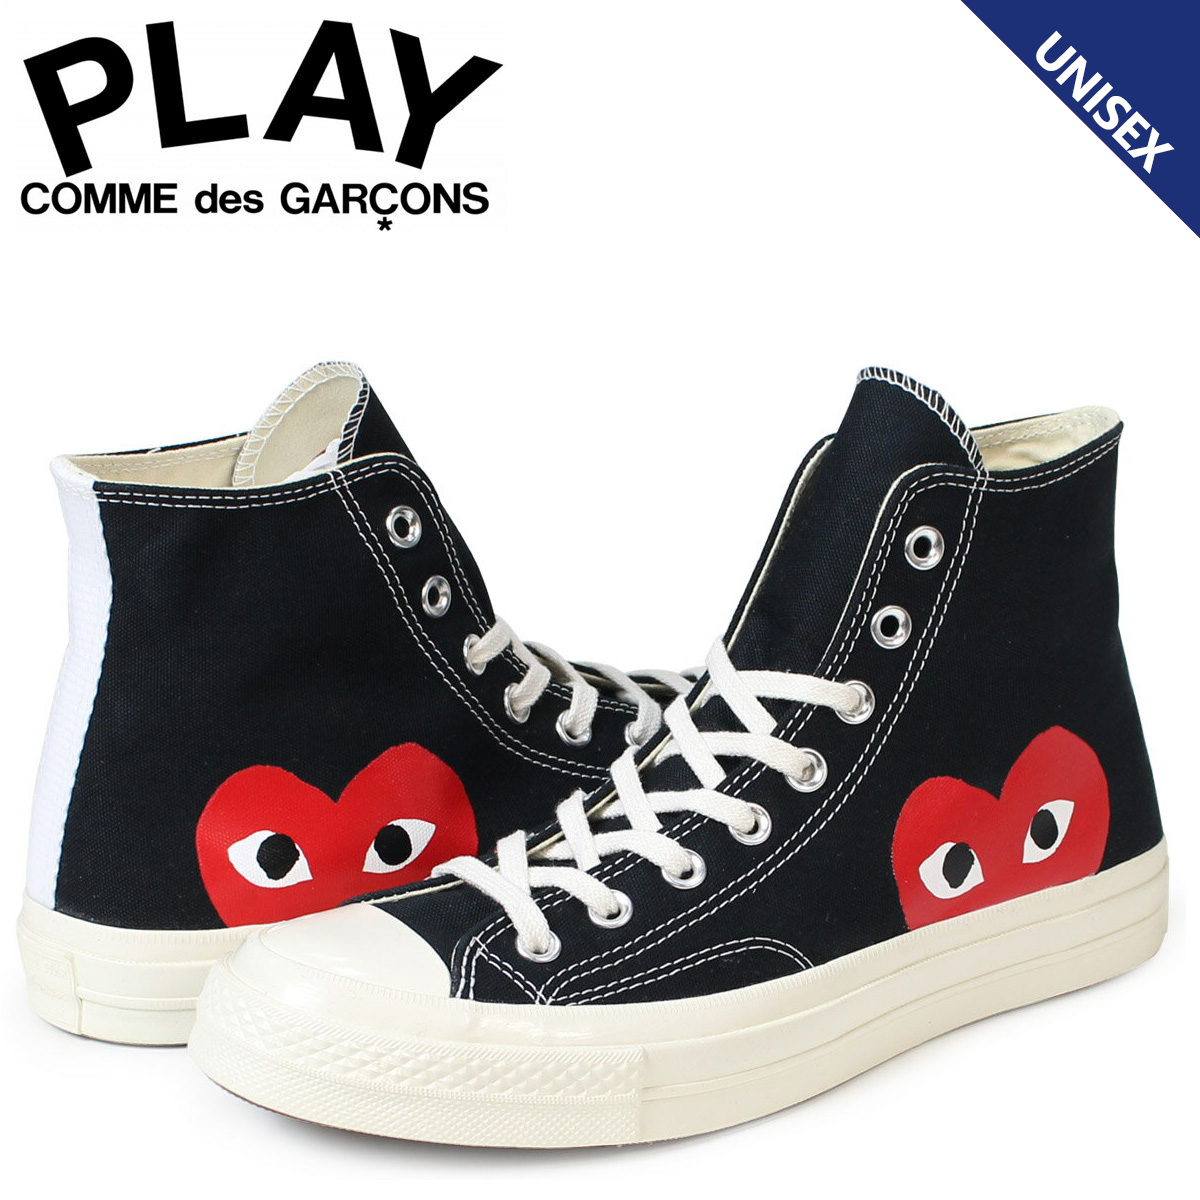 cdg play converse レディース outlet store